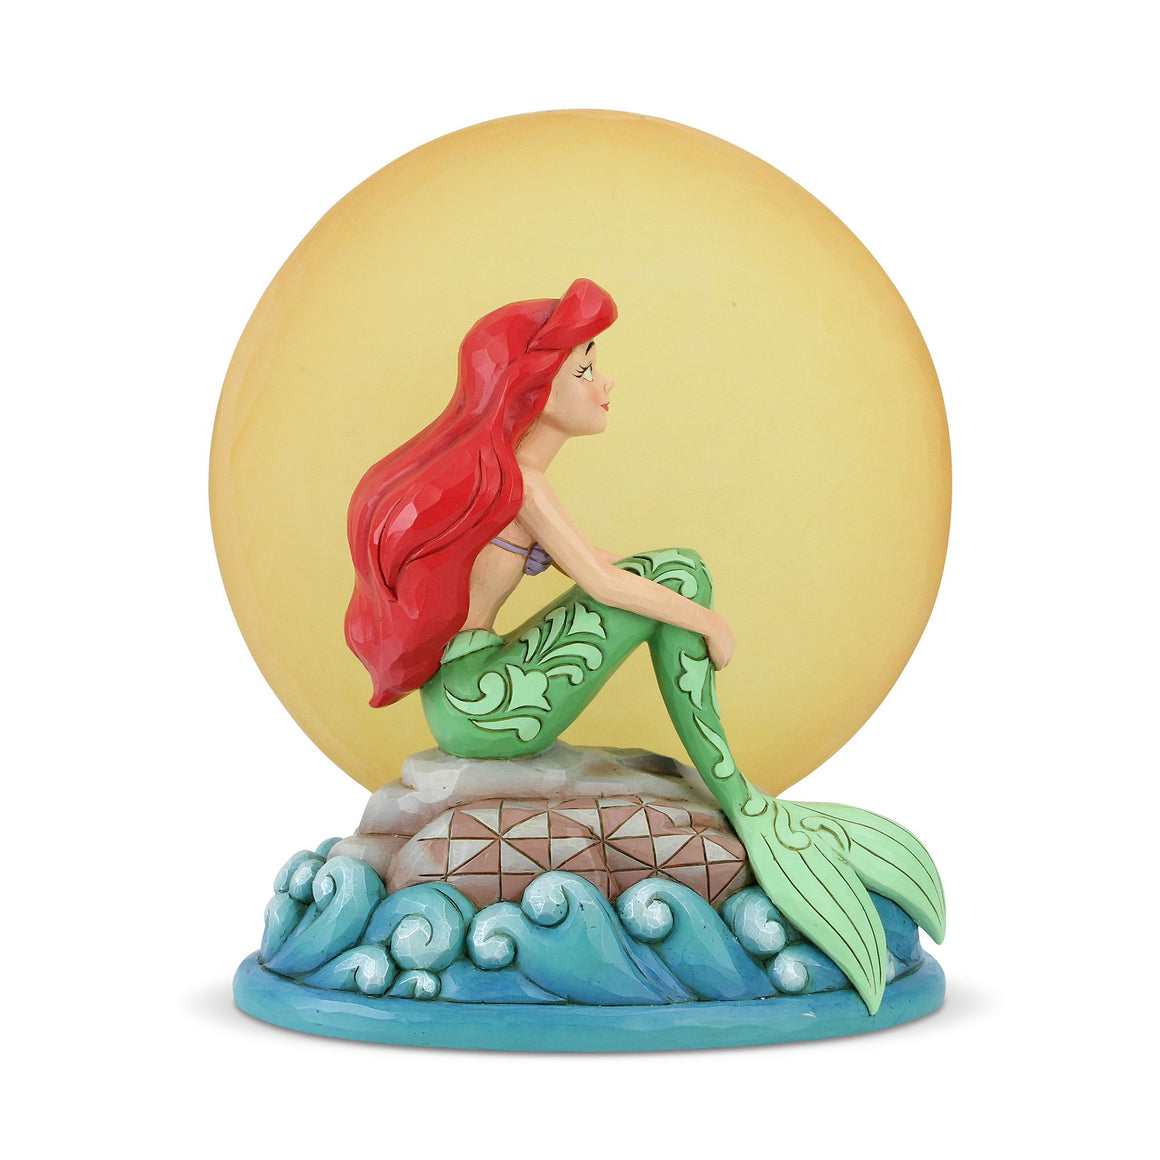 Mermaid by Moonlight - Ariel Figurine - Disney Traditions by Jim Shore